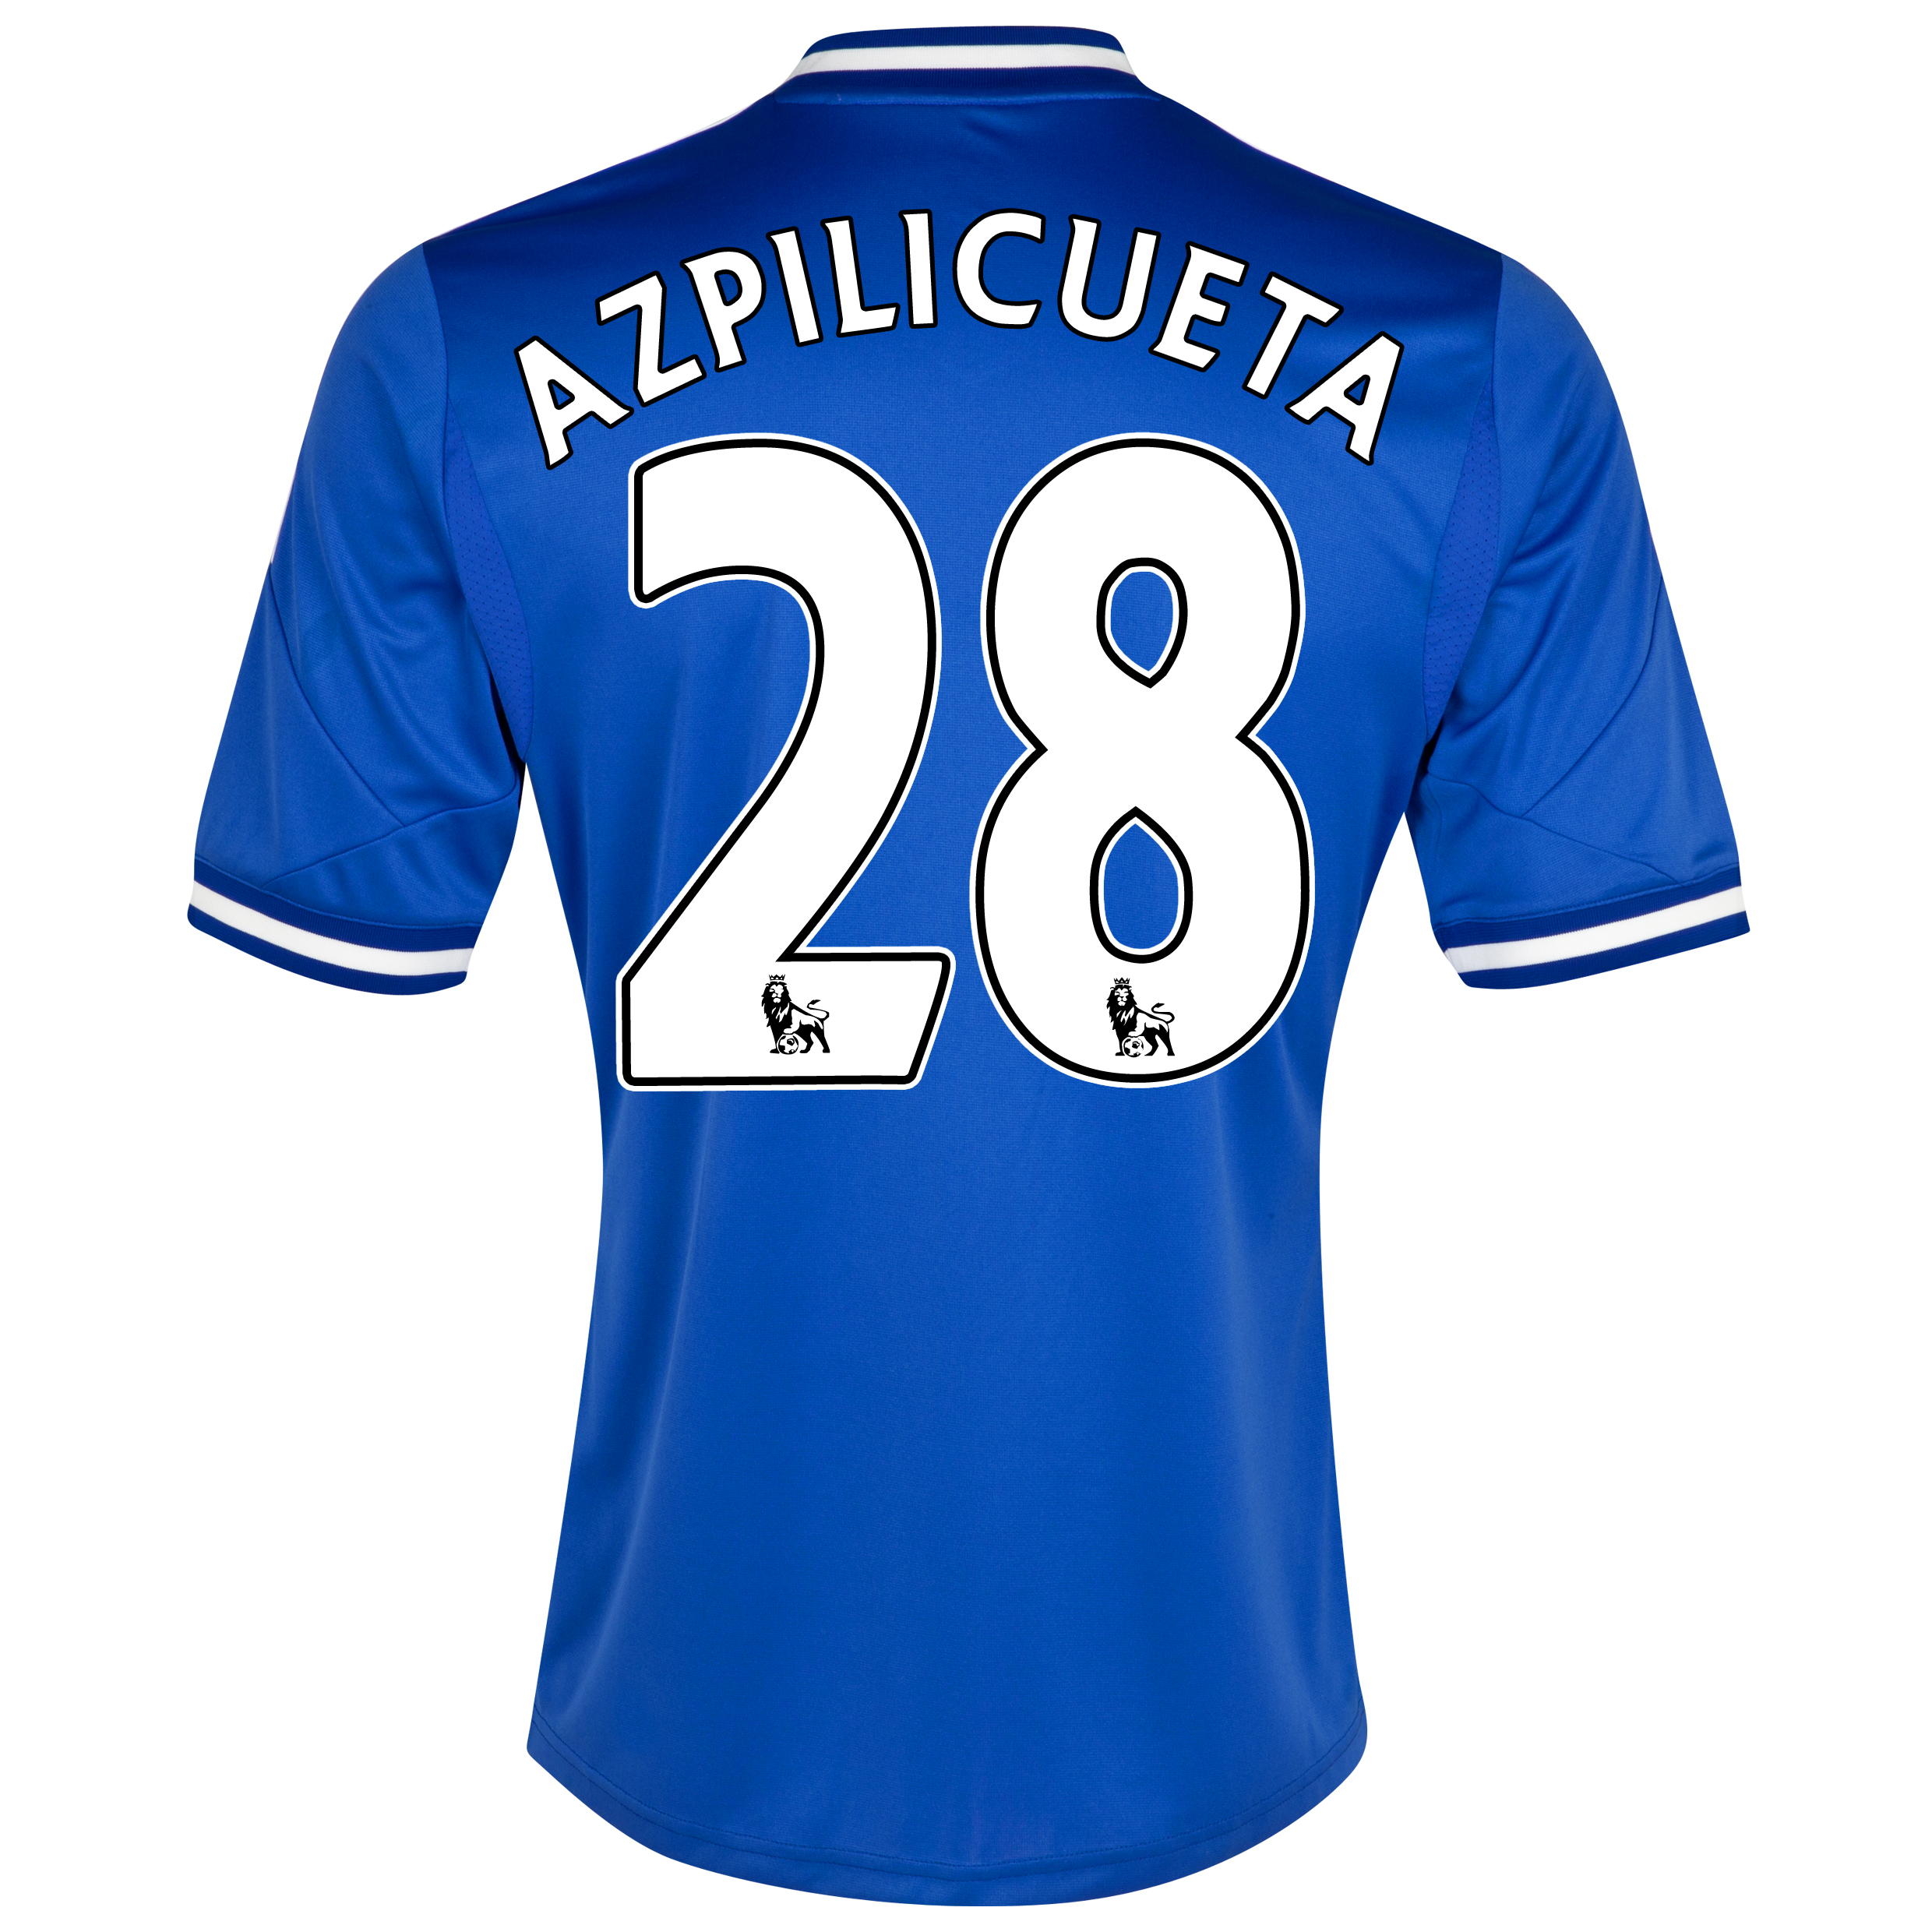 Chelsea Home Shirt 2013/14 with Azpilicueta 28 printing